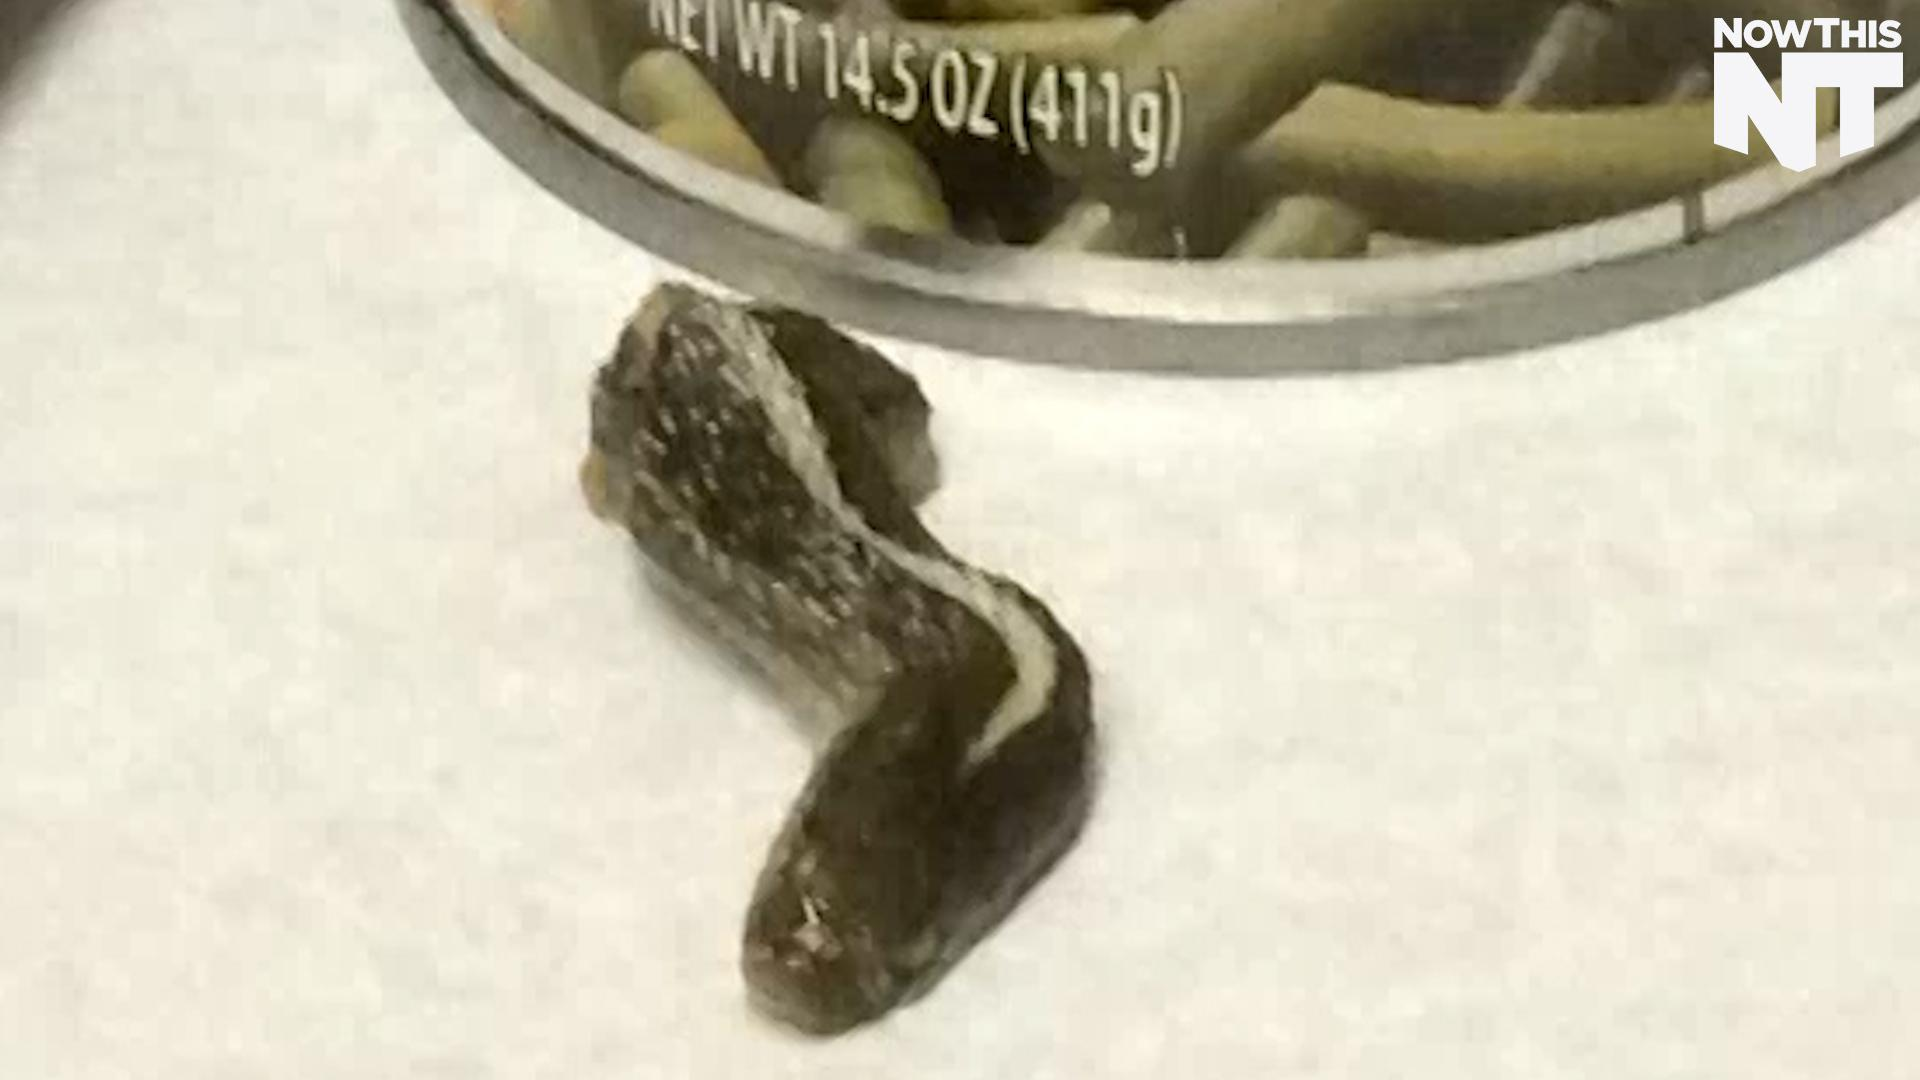 A Snake Head Was Found In A Can Of Beans